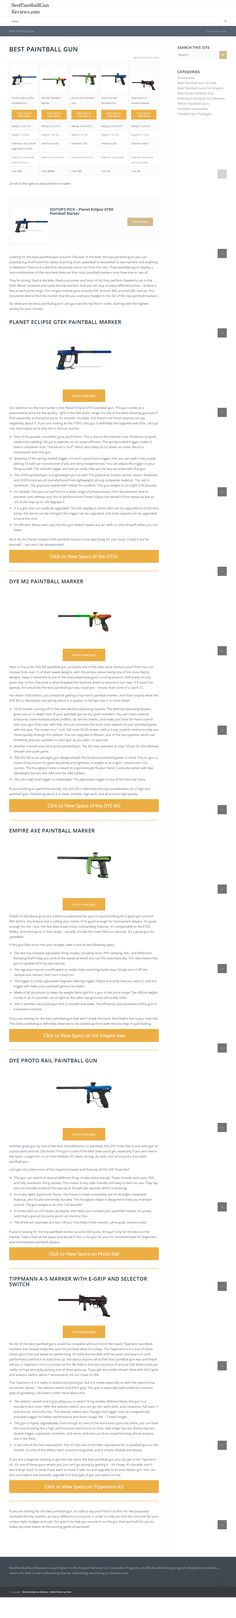 Best Paintball Gun Reviews purposely reviewed and rated the top markers that you can buy at many different prices at least a few at each price range.